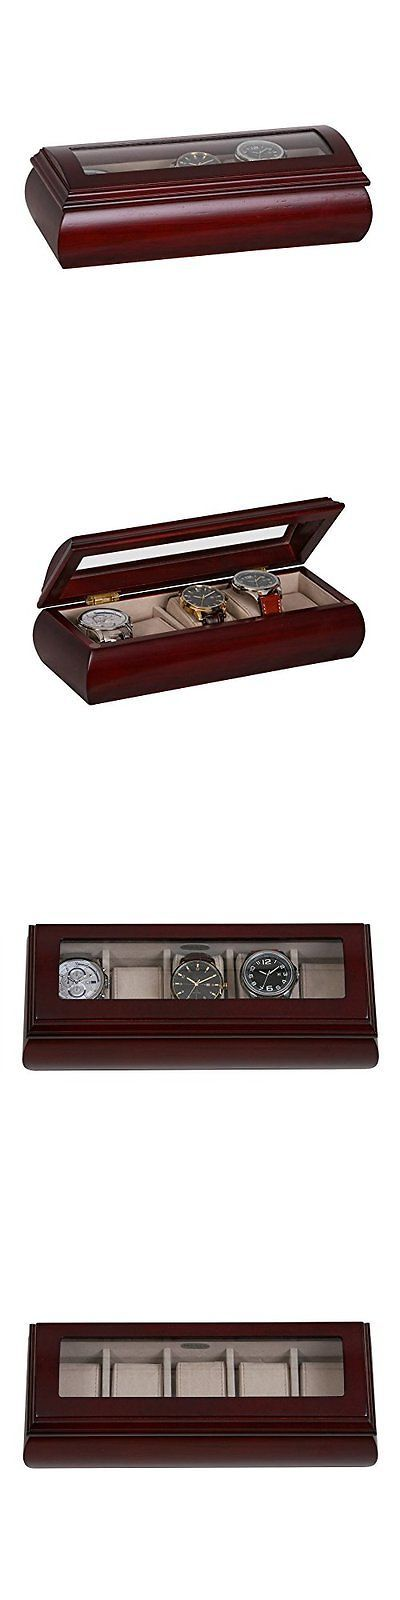 Parts and Accessories 51021: Mele And Co. Emery Glass Top Wooden Watch Box (5 Sections, Cherry Finish...New BUY IT NOW ONLY: $50.25